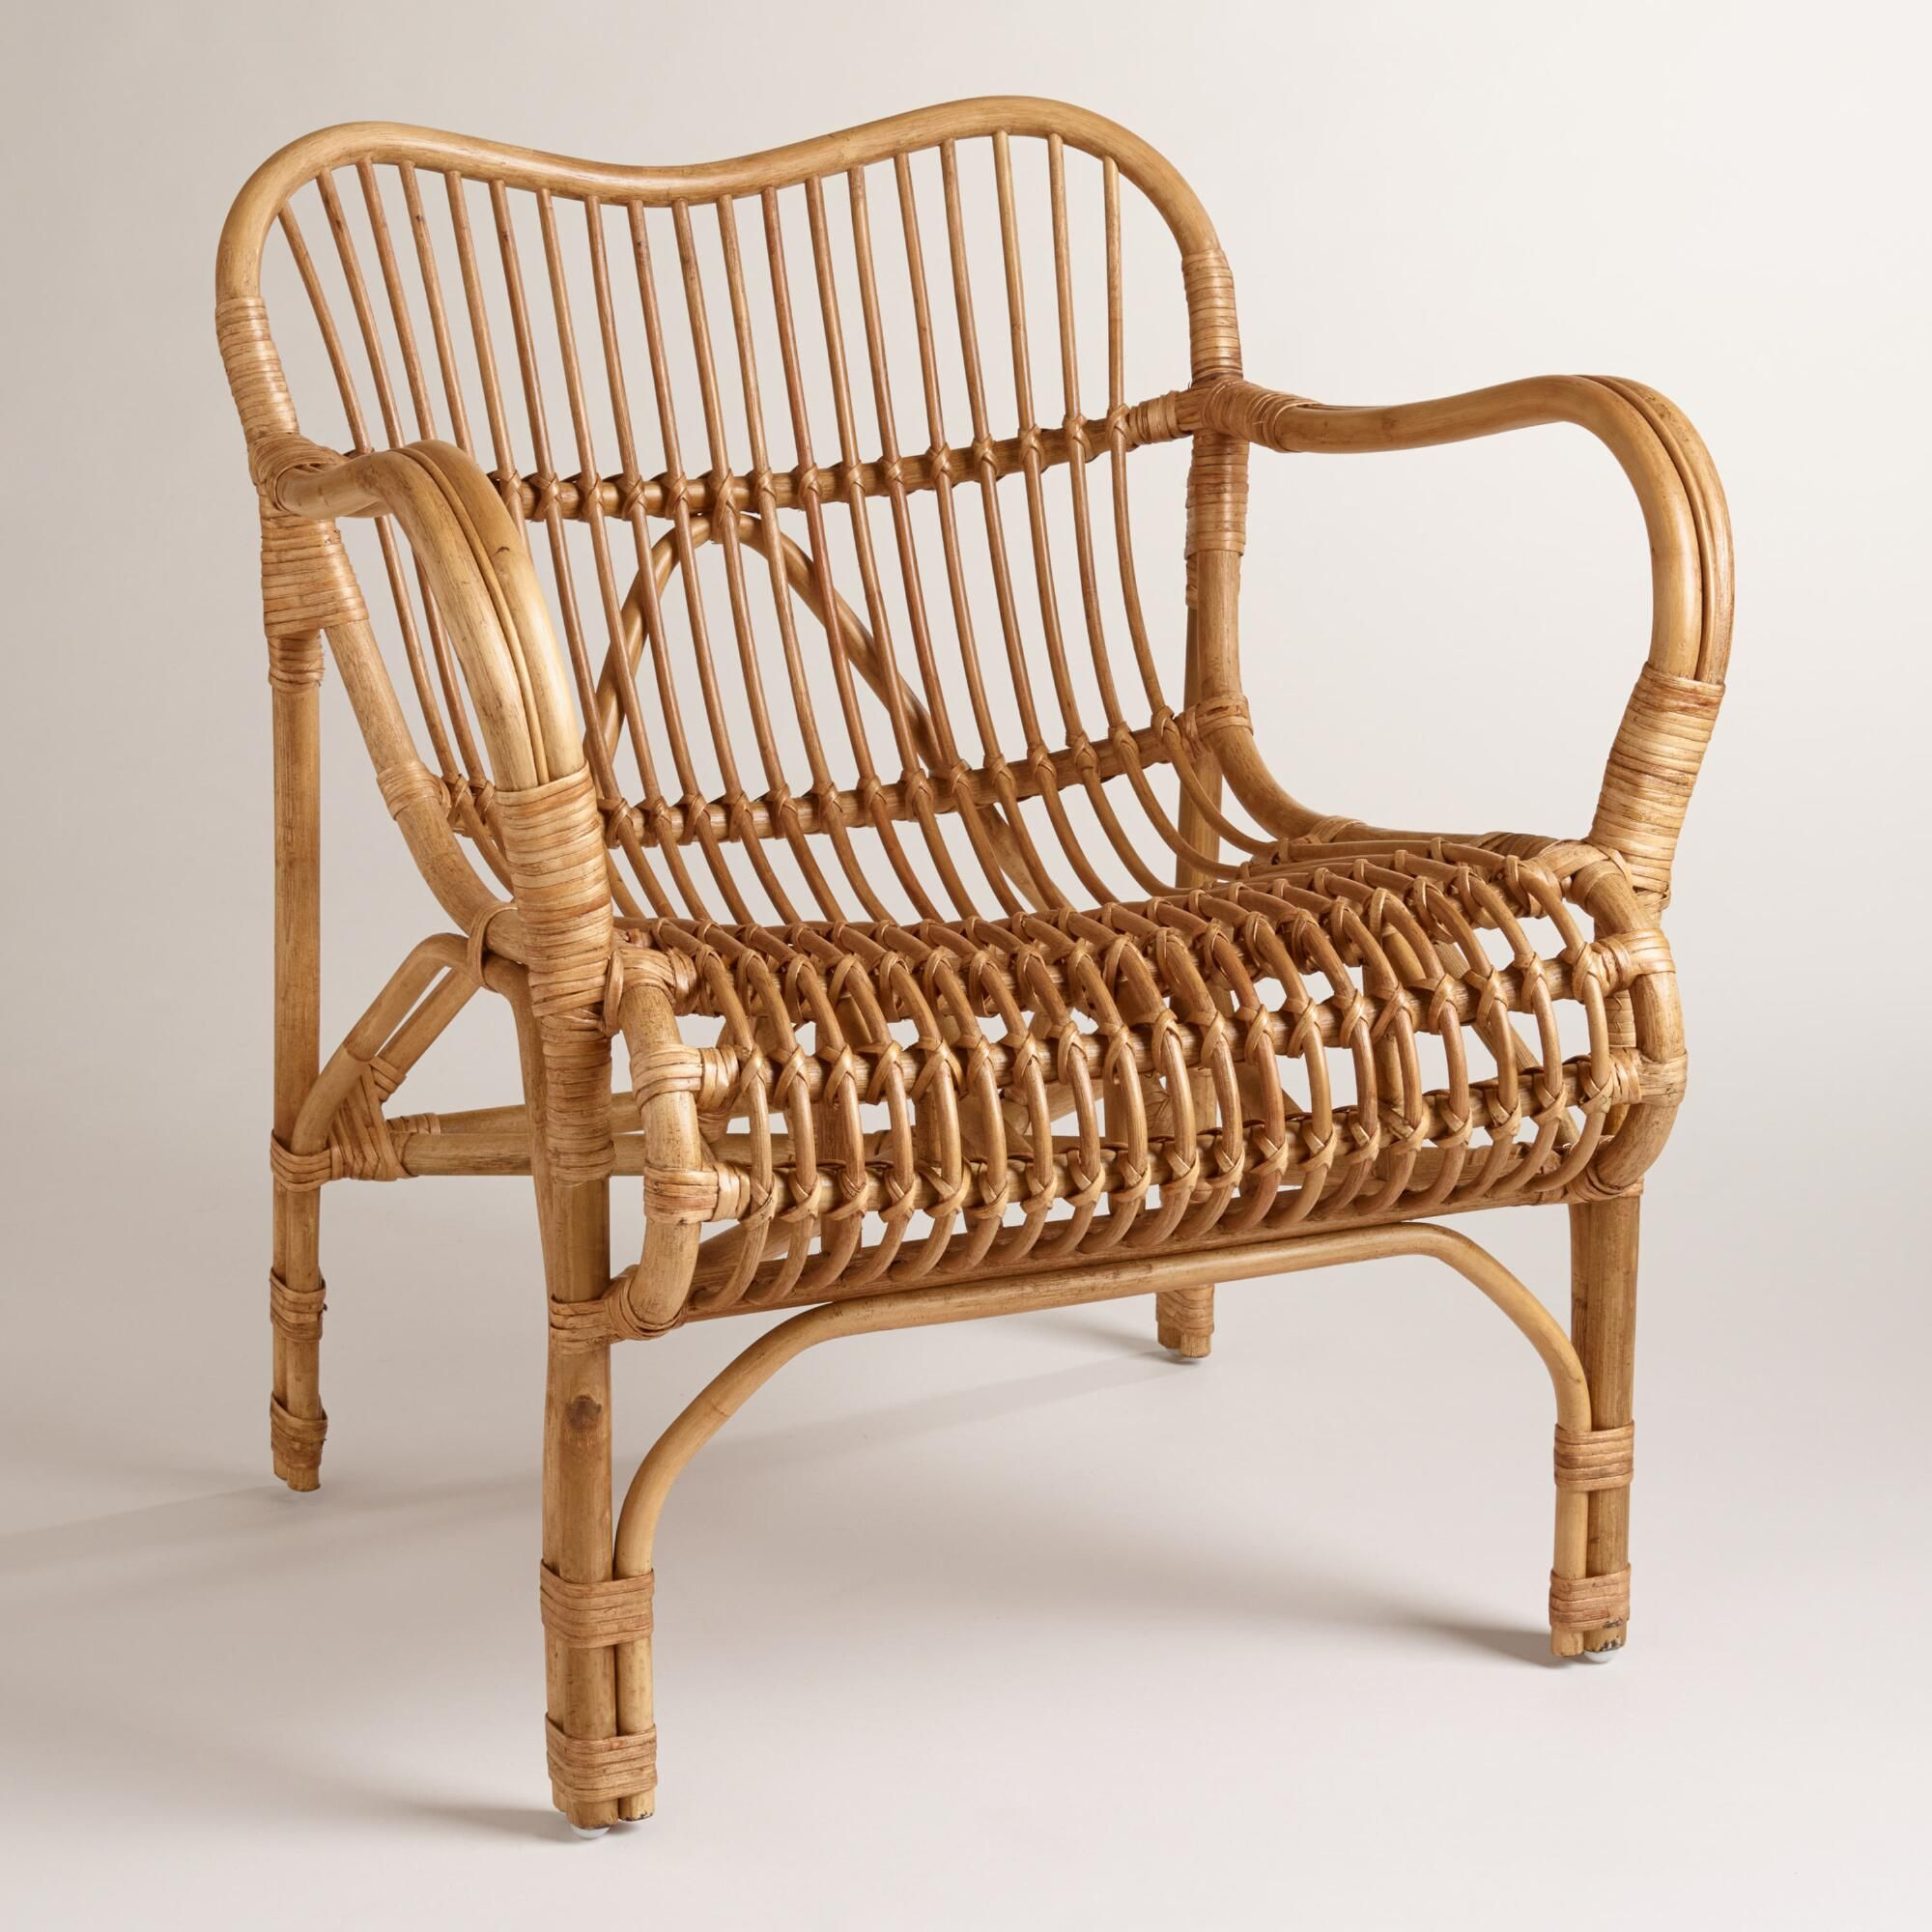 Cradling comfort defines our sturdy rattan cole chair